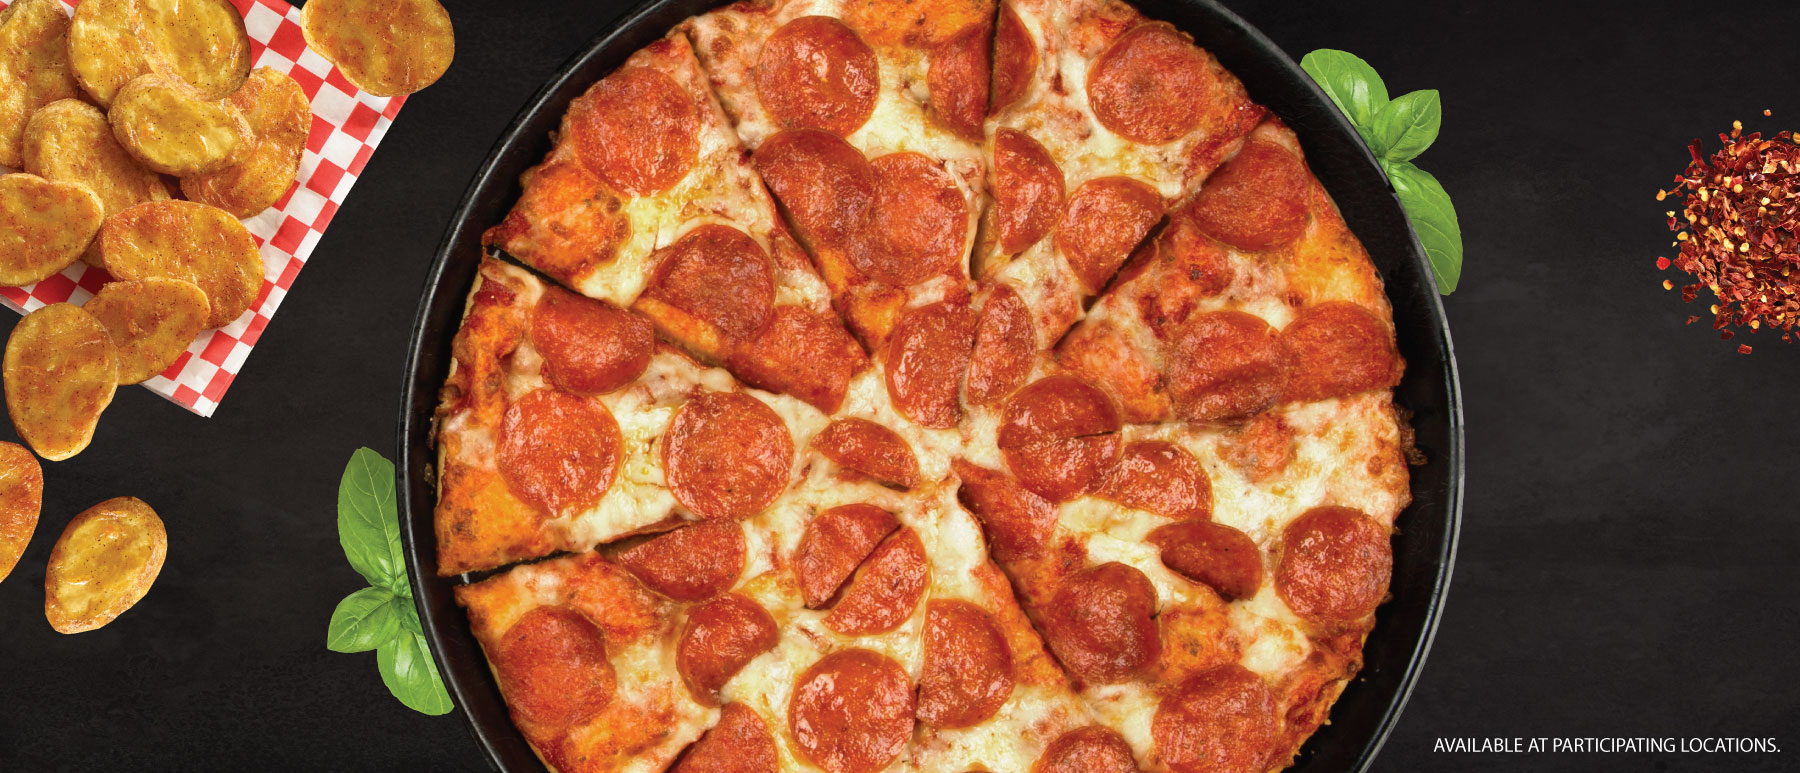 Shakey's Hero Image - Pizza + Mojos for Two $16.99